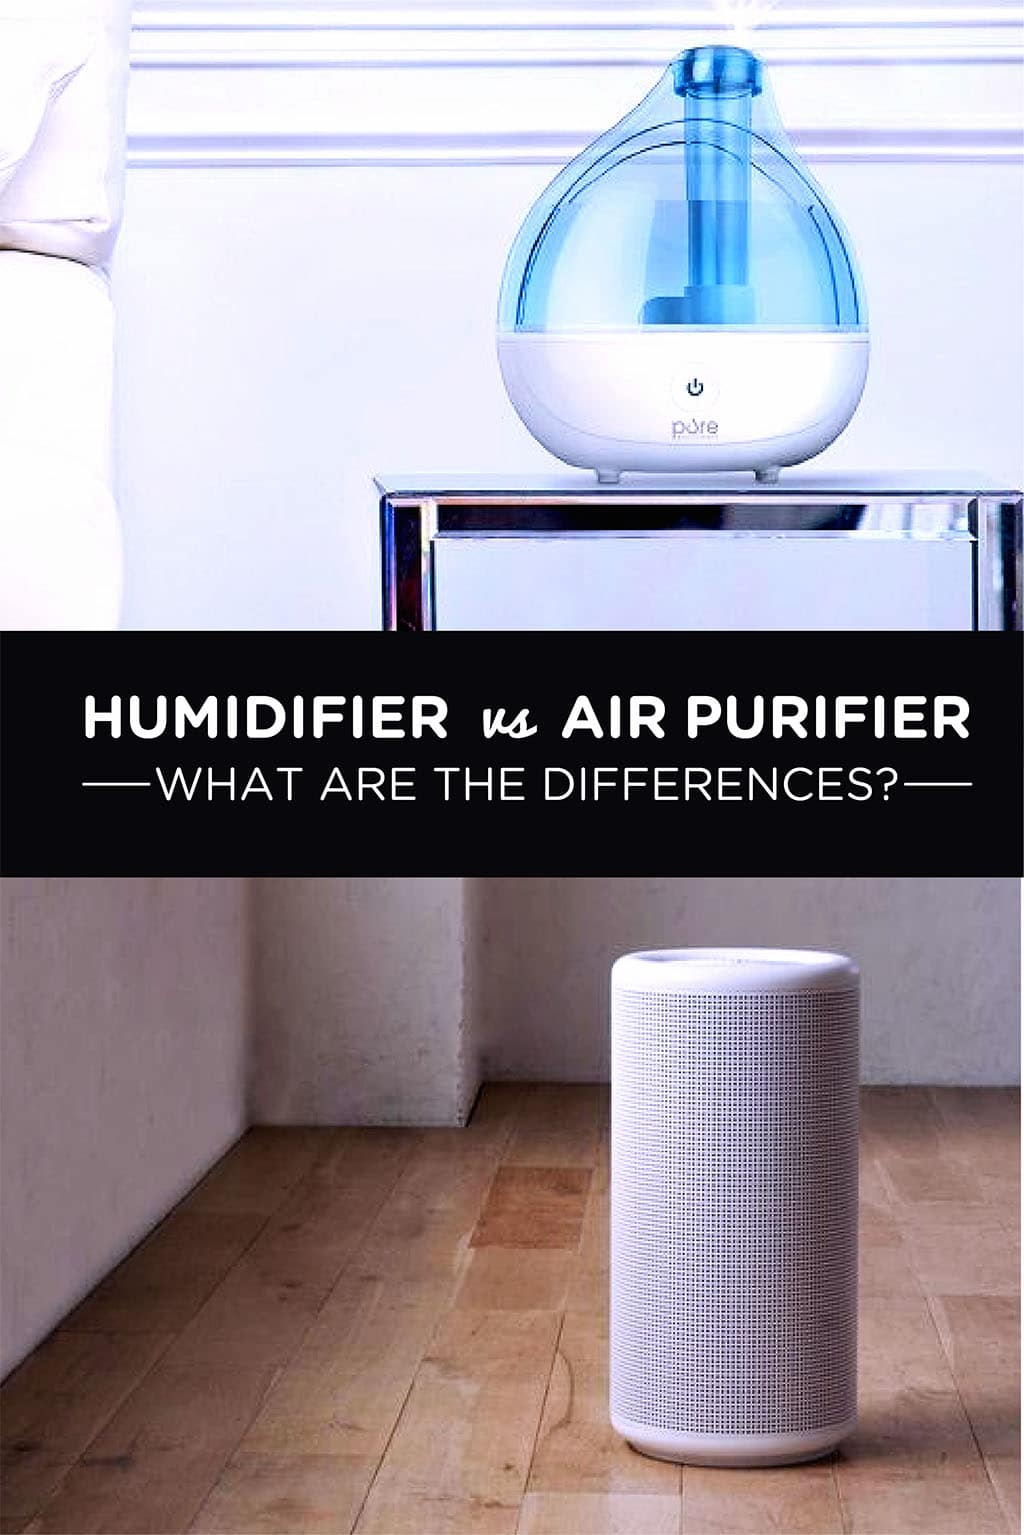 Humidifier vs Air Purifier What are the differences